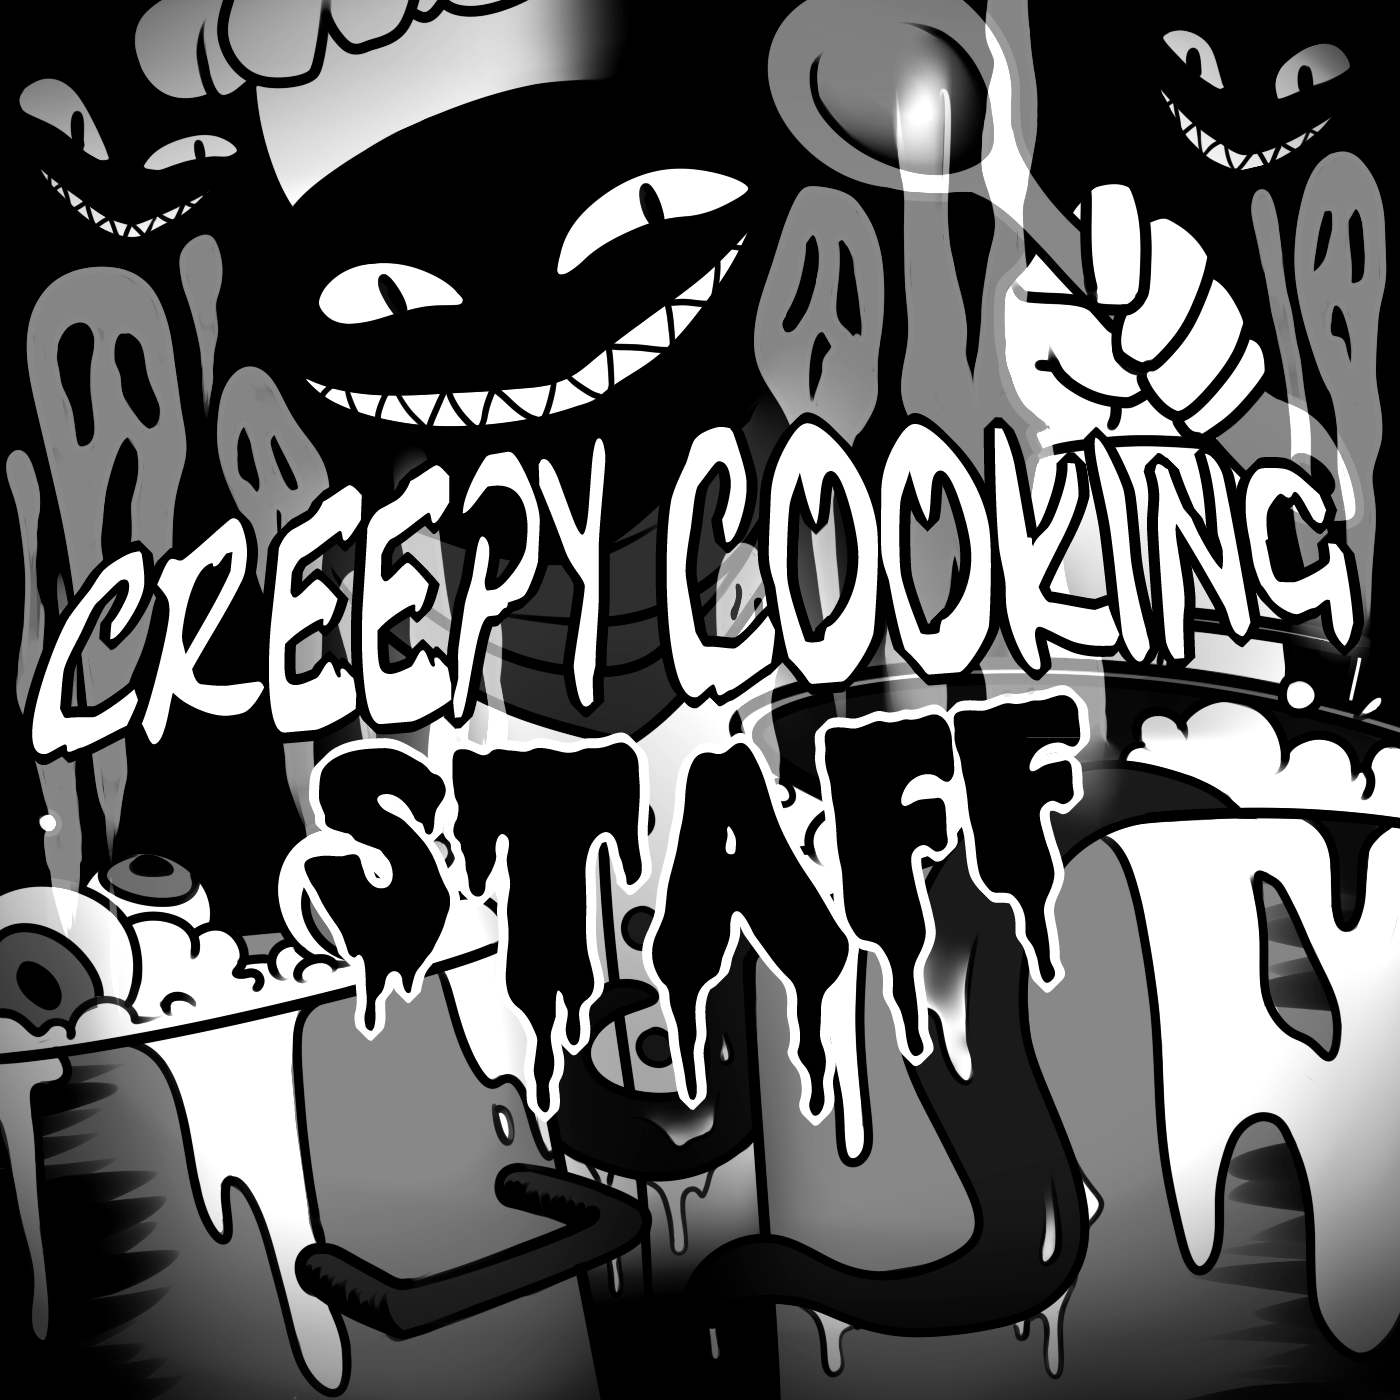 creepy_cooking_staff_horror_podcast